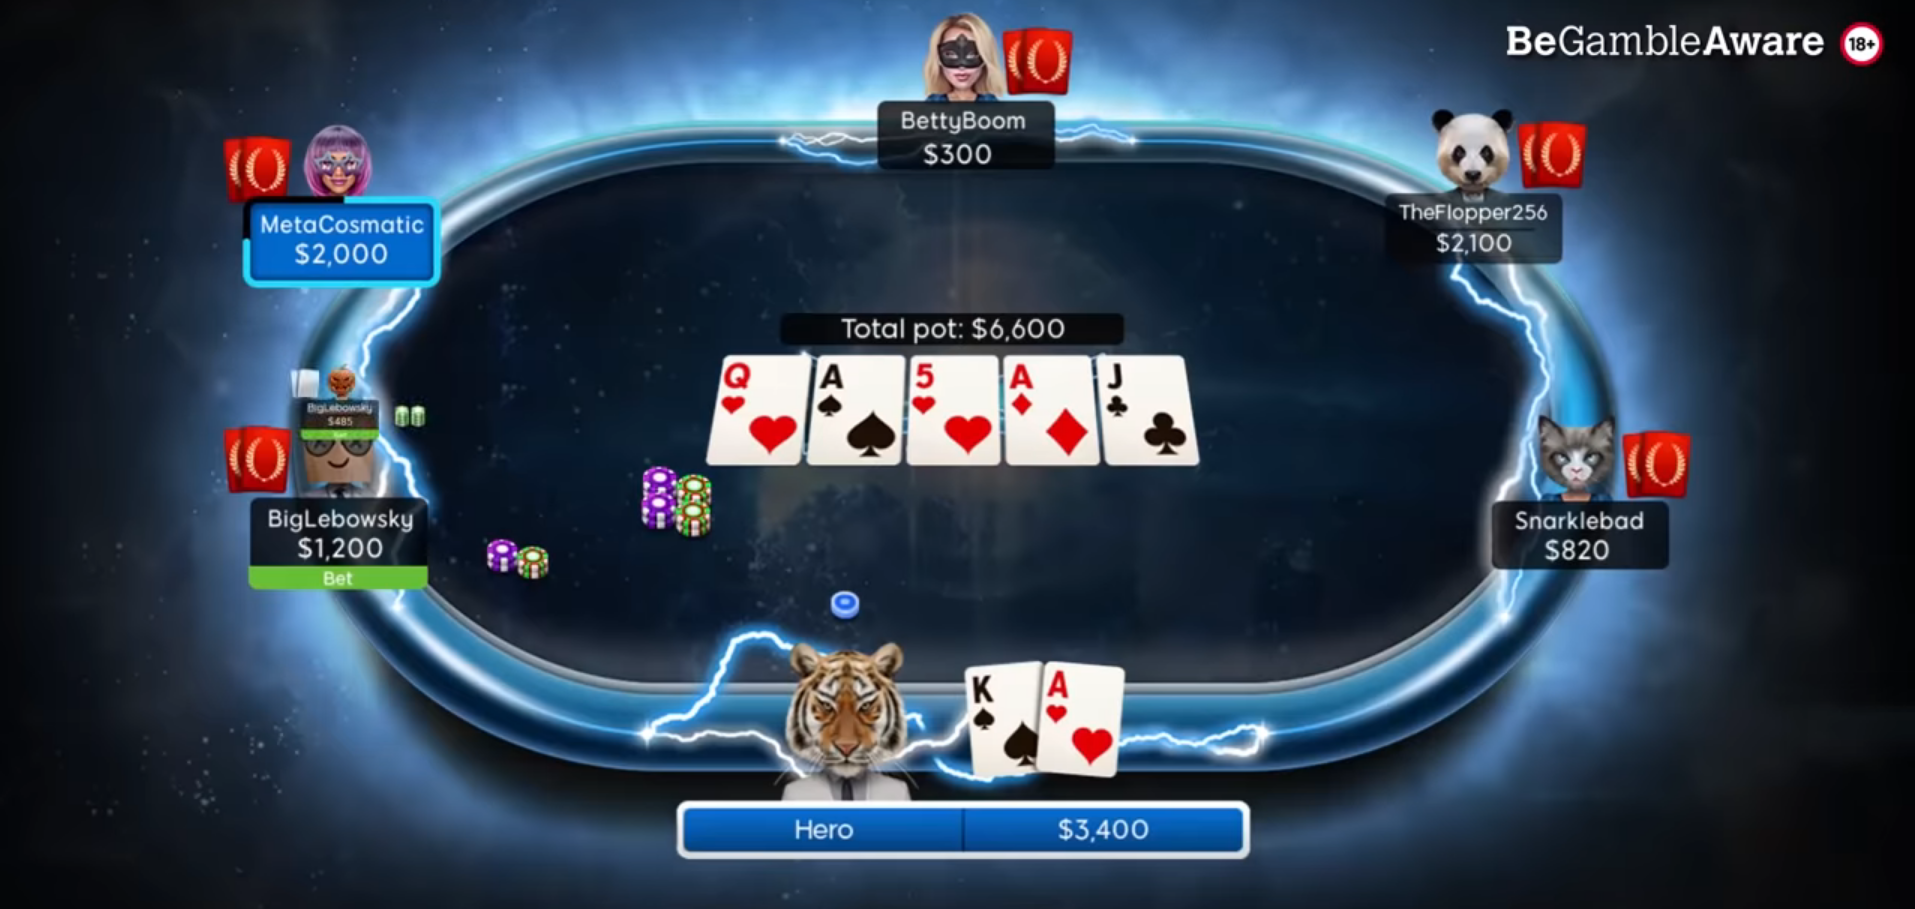 Poker Online - Top 10 Online Poker Sites, Reviews, News And Tutorials